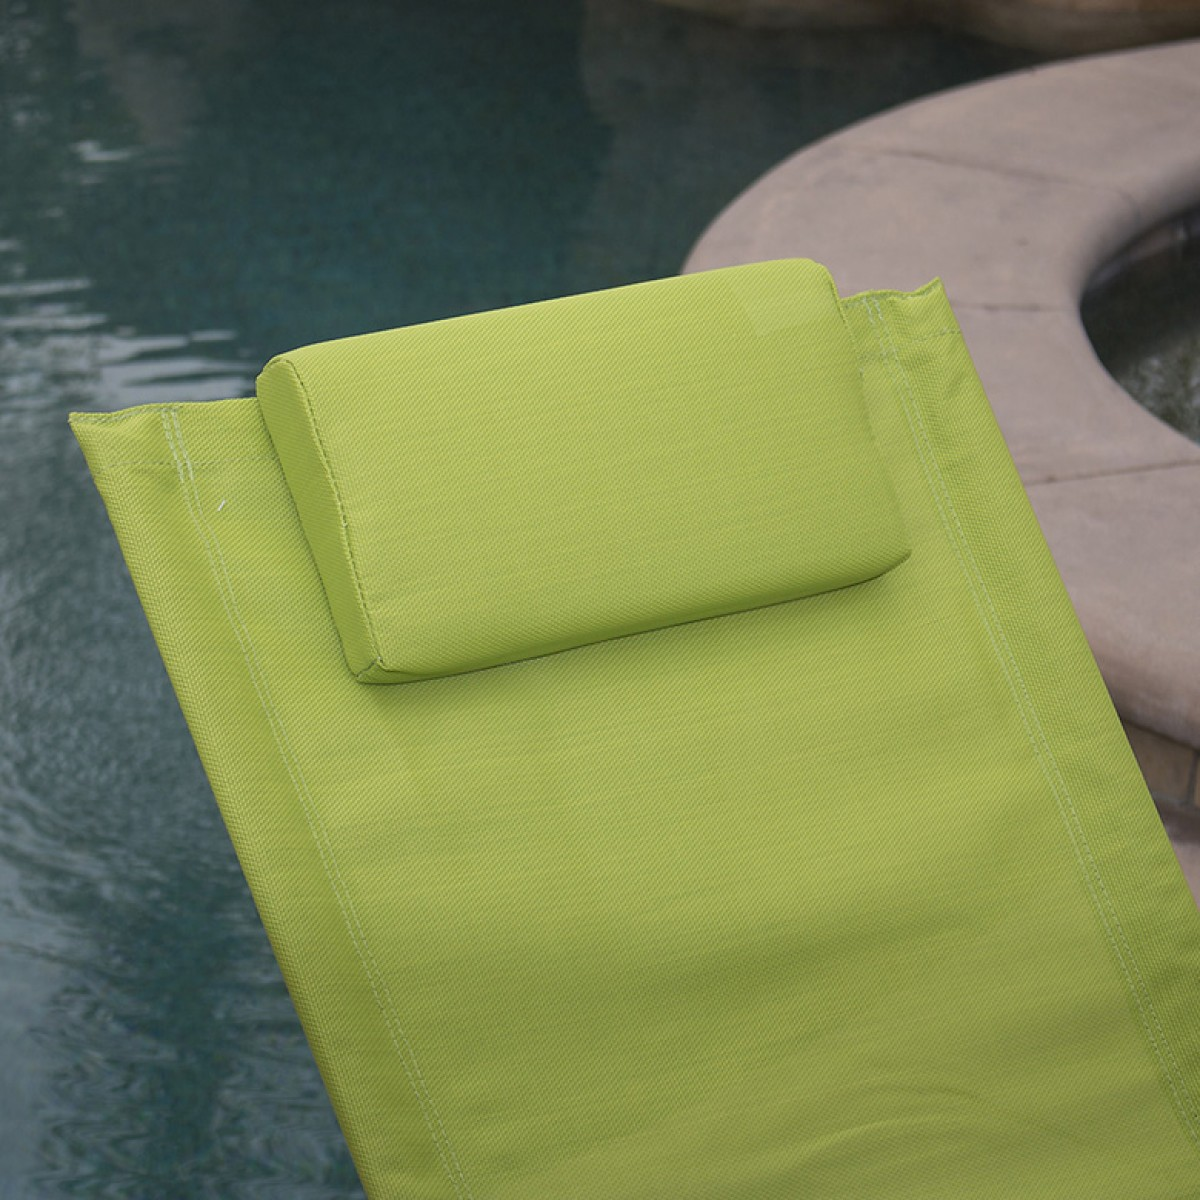 Orbit Lounger | Orbital Lounger | Flip Lounger